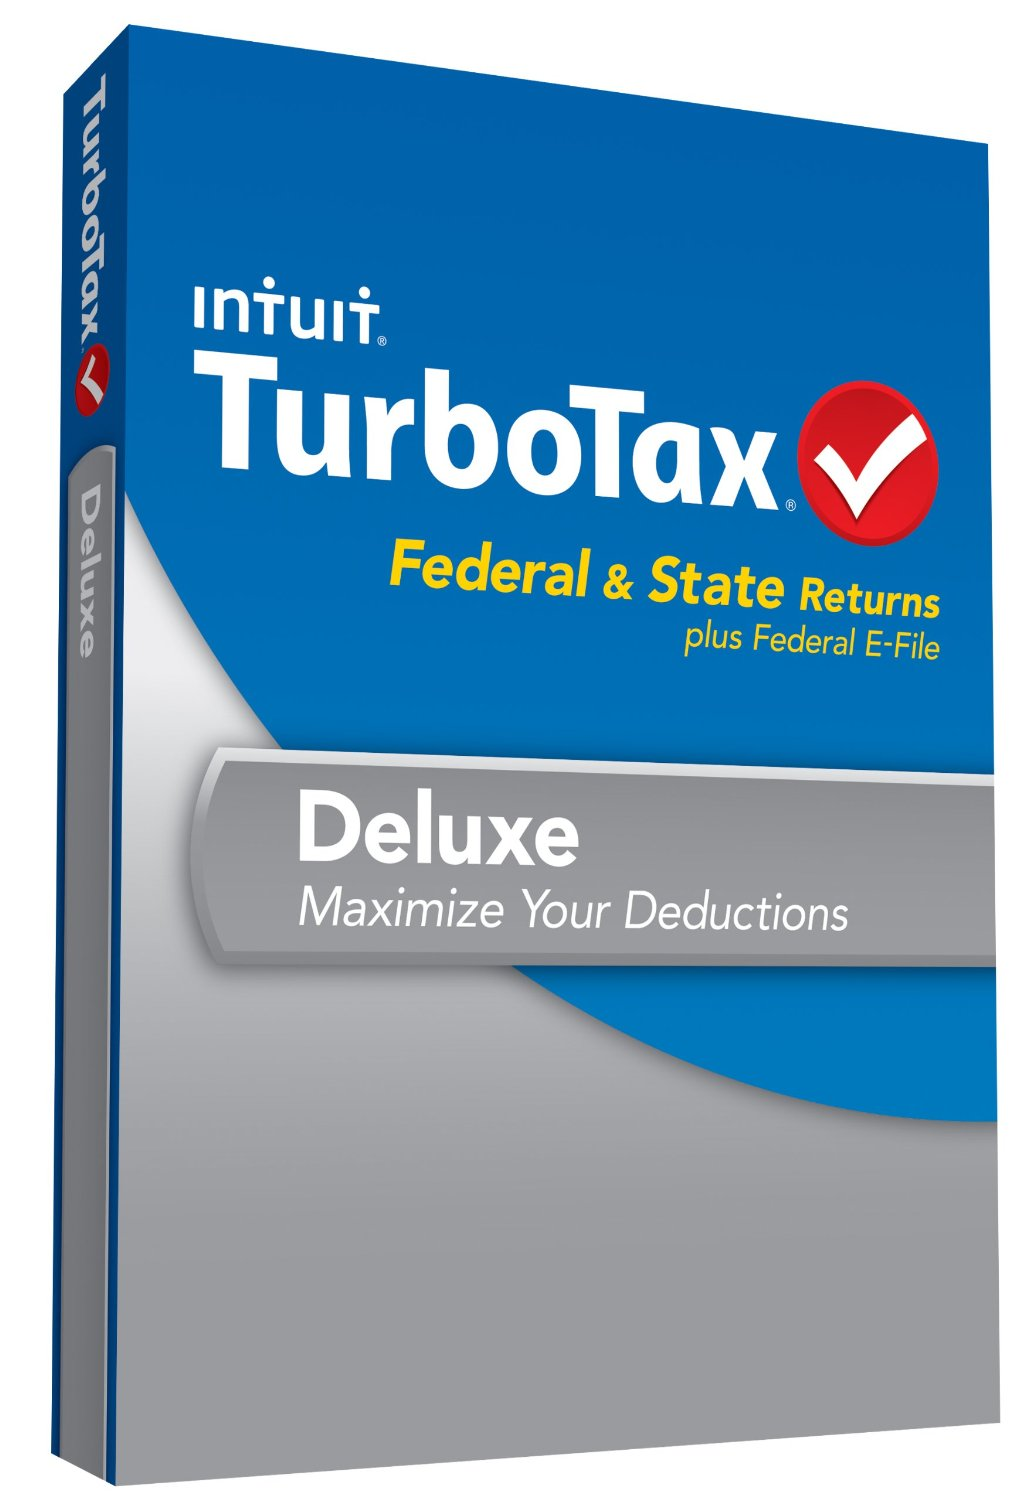 Intuit Tax Form Coupons